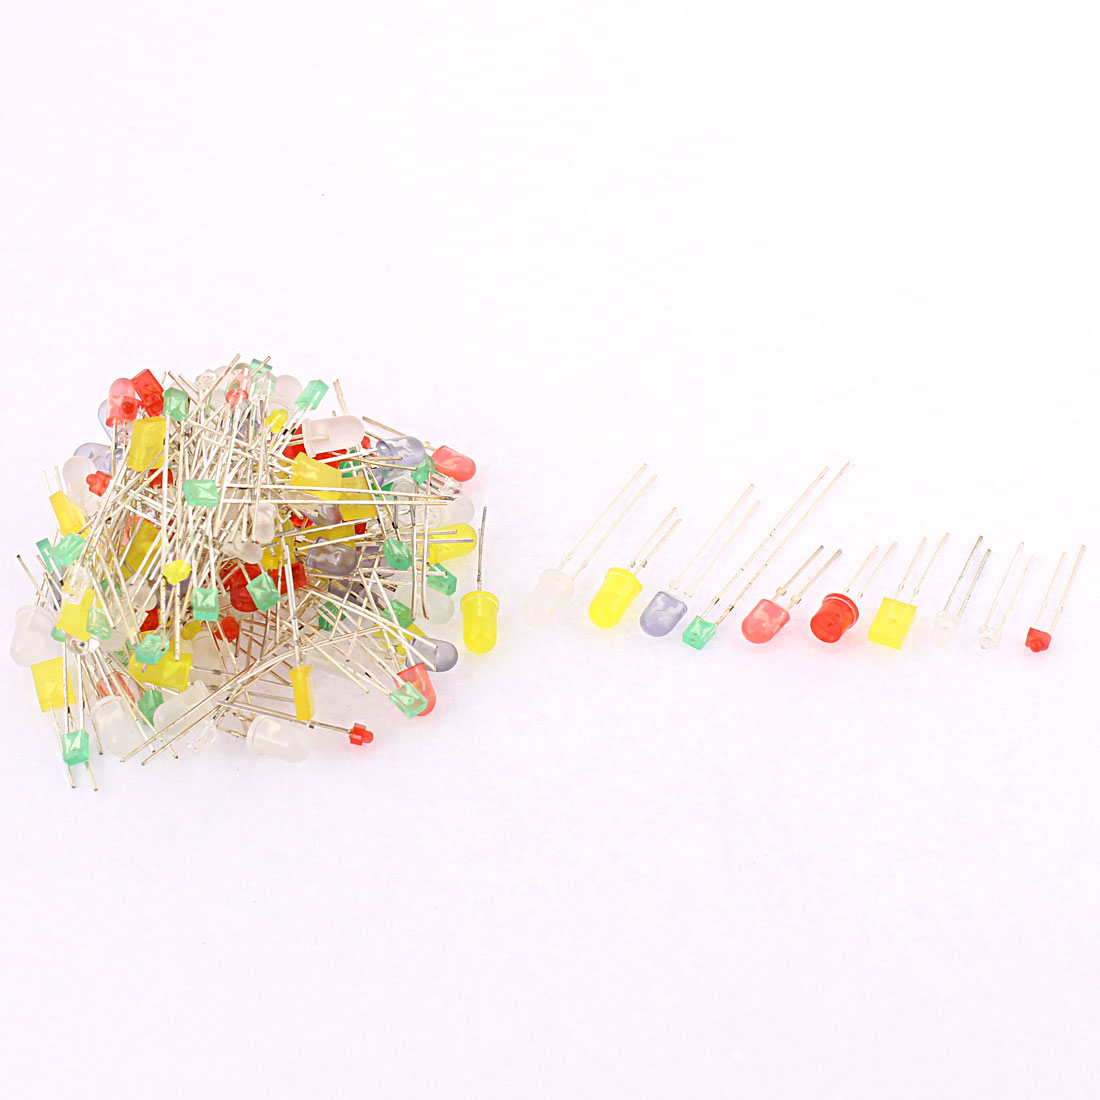 160 Pcs 2.54mm Lead Pitch LED Light Emitting Diodes